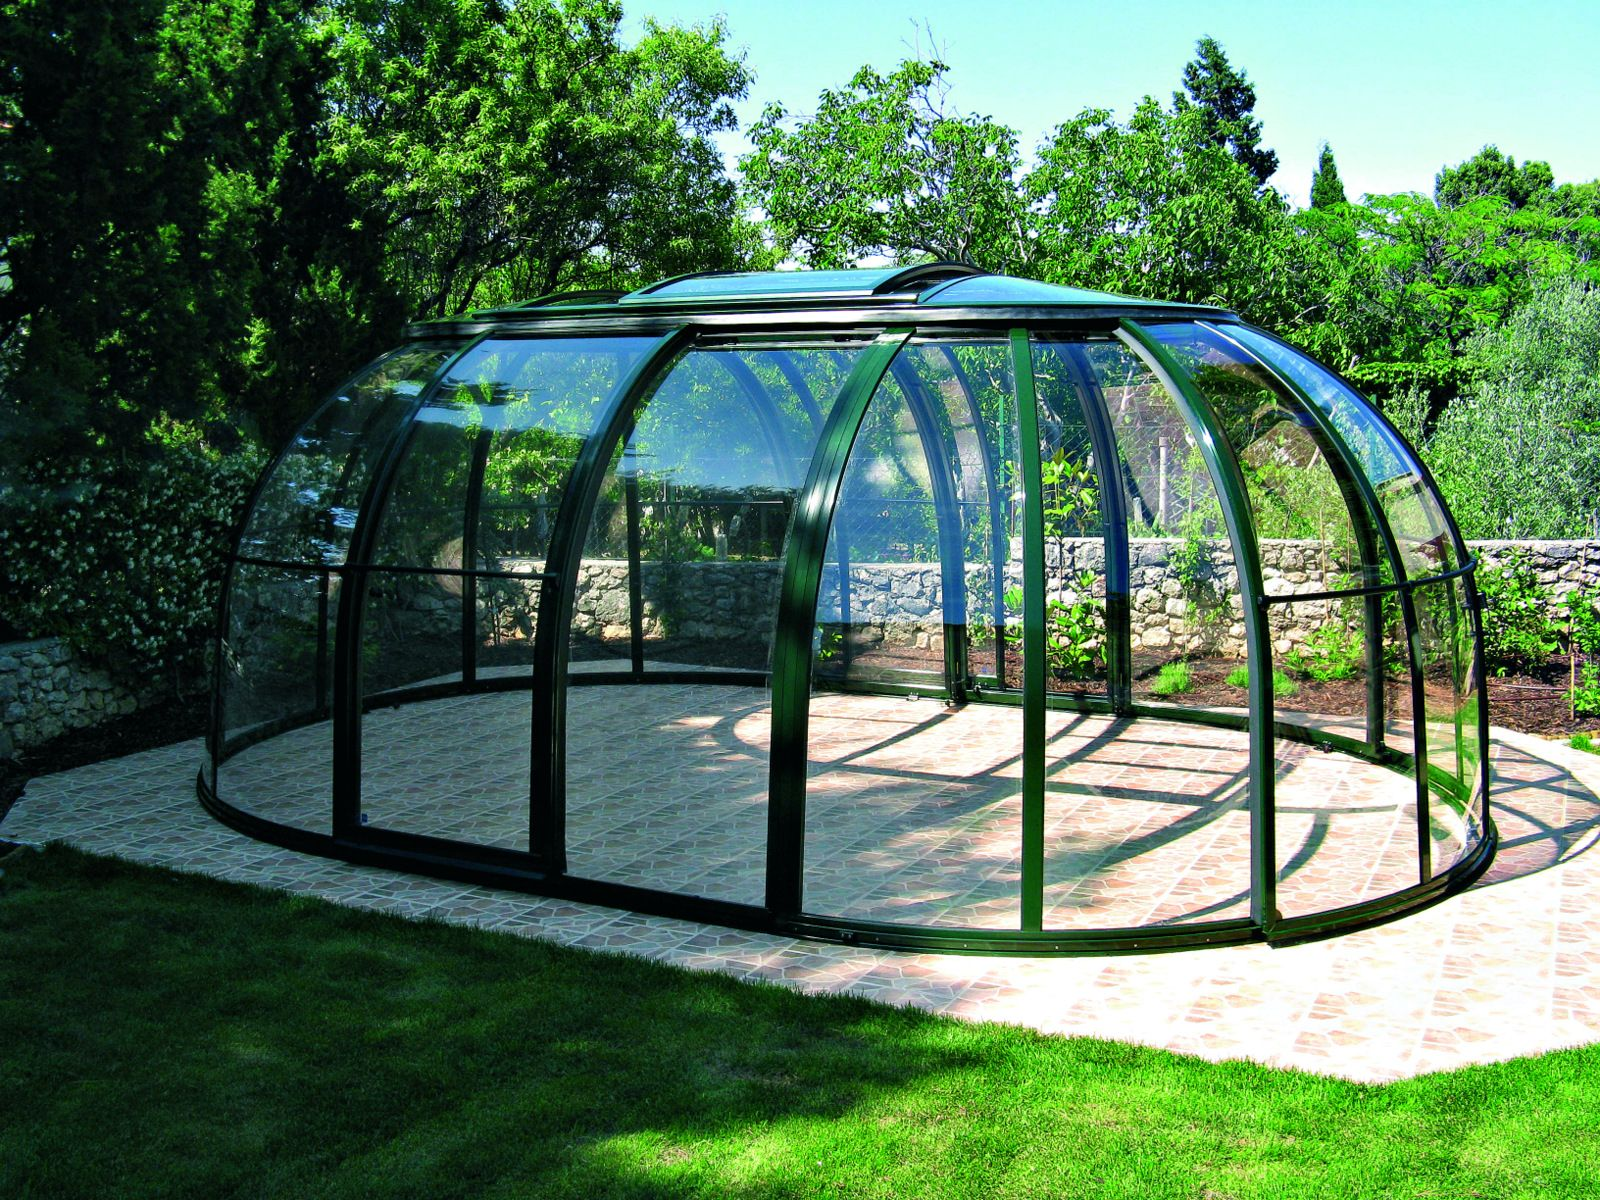 SUNHOUSE hot tub enclosure can be used as a shed for your car ...